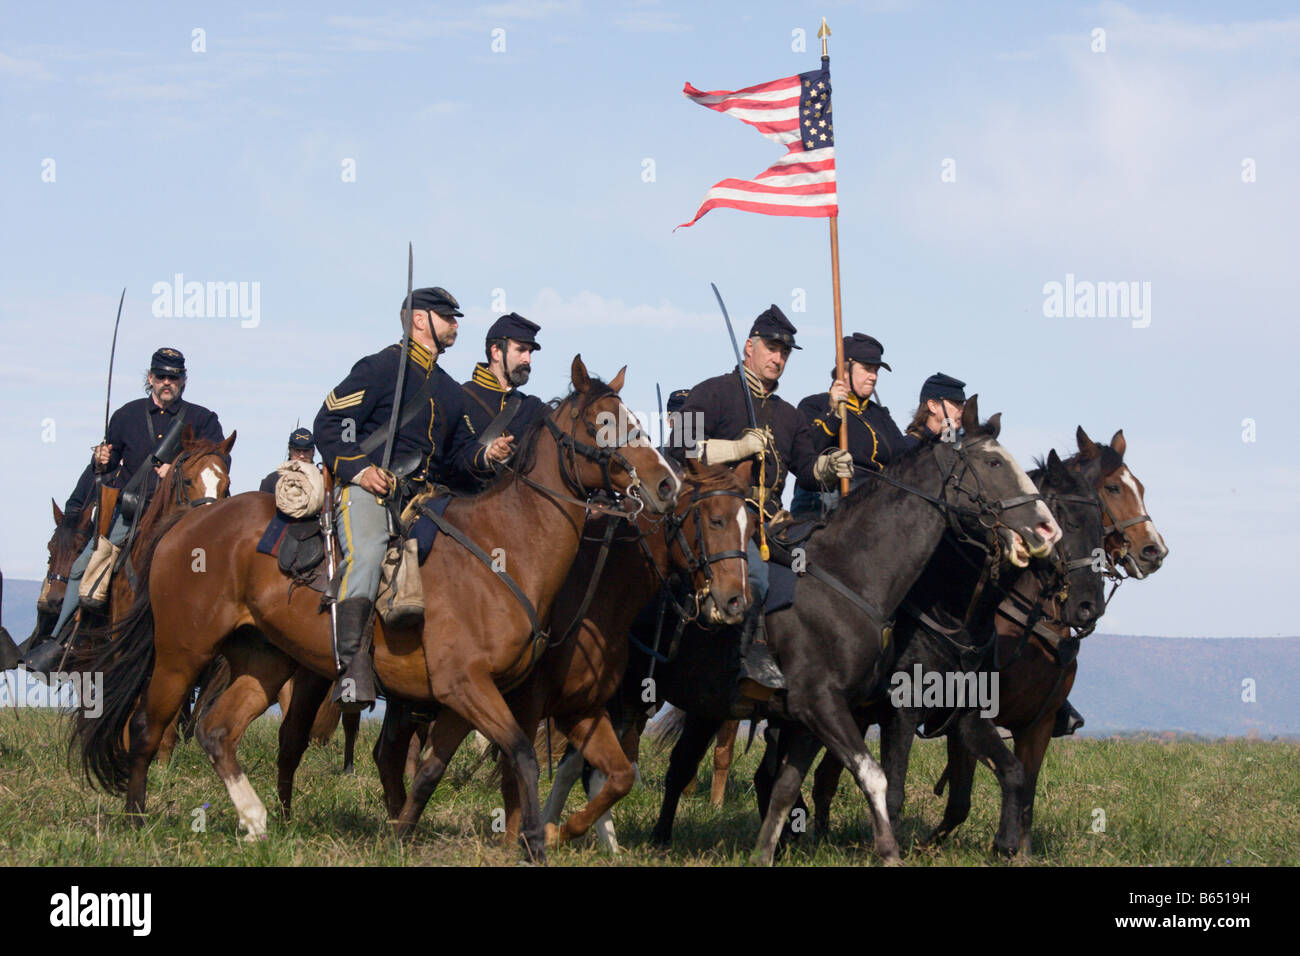 Federal soldiers at the renactment of the Battle of Berryville. - Stock Image